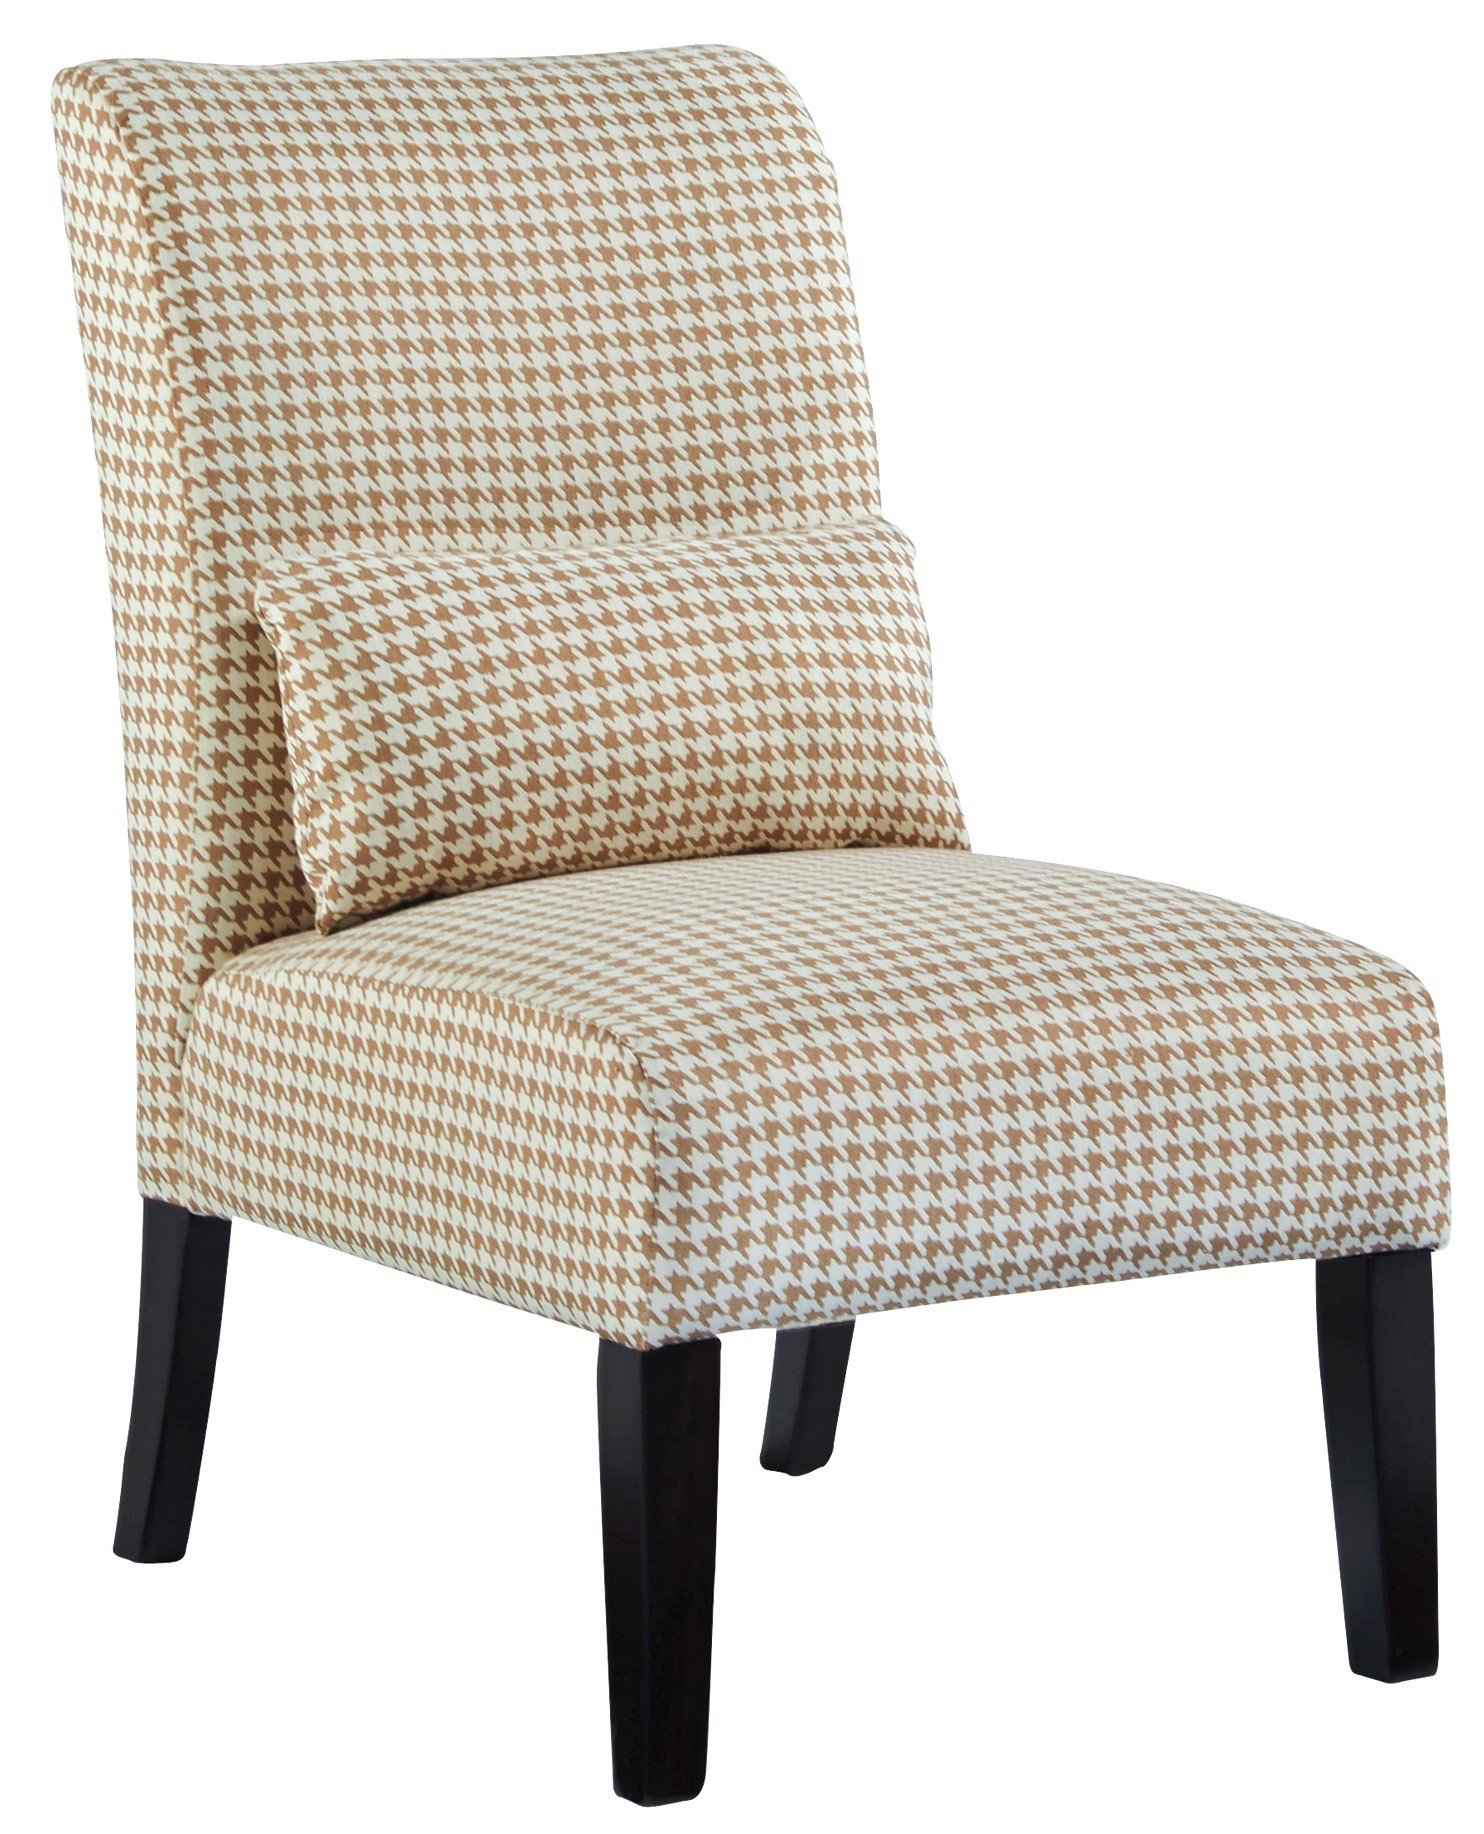 Annora Caramel Accent Chair From Ashley 6160560